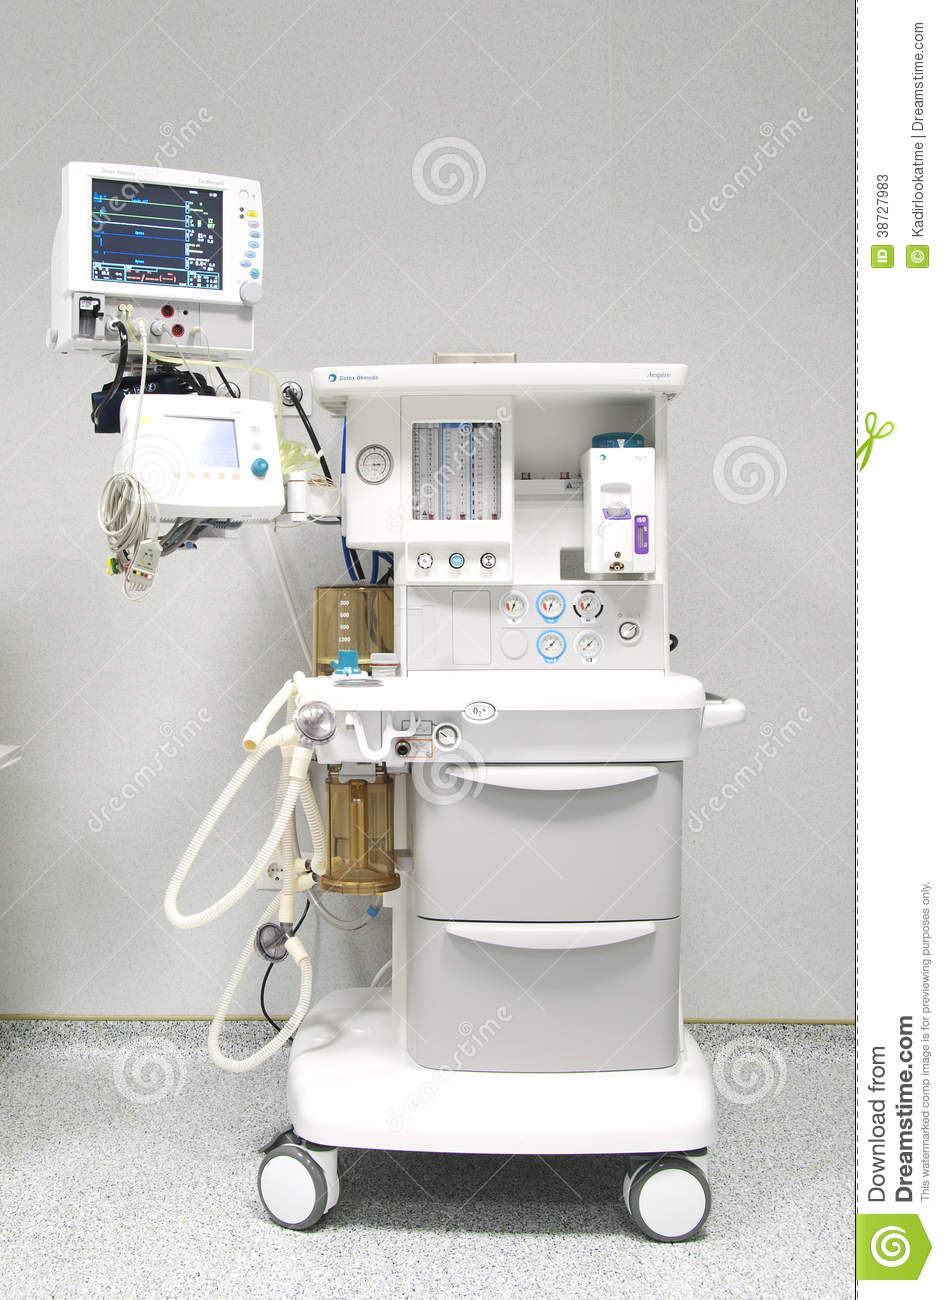 La chambre d 39 h pital des enfants photo stock ditorial for Chambre hopital